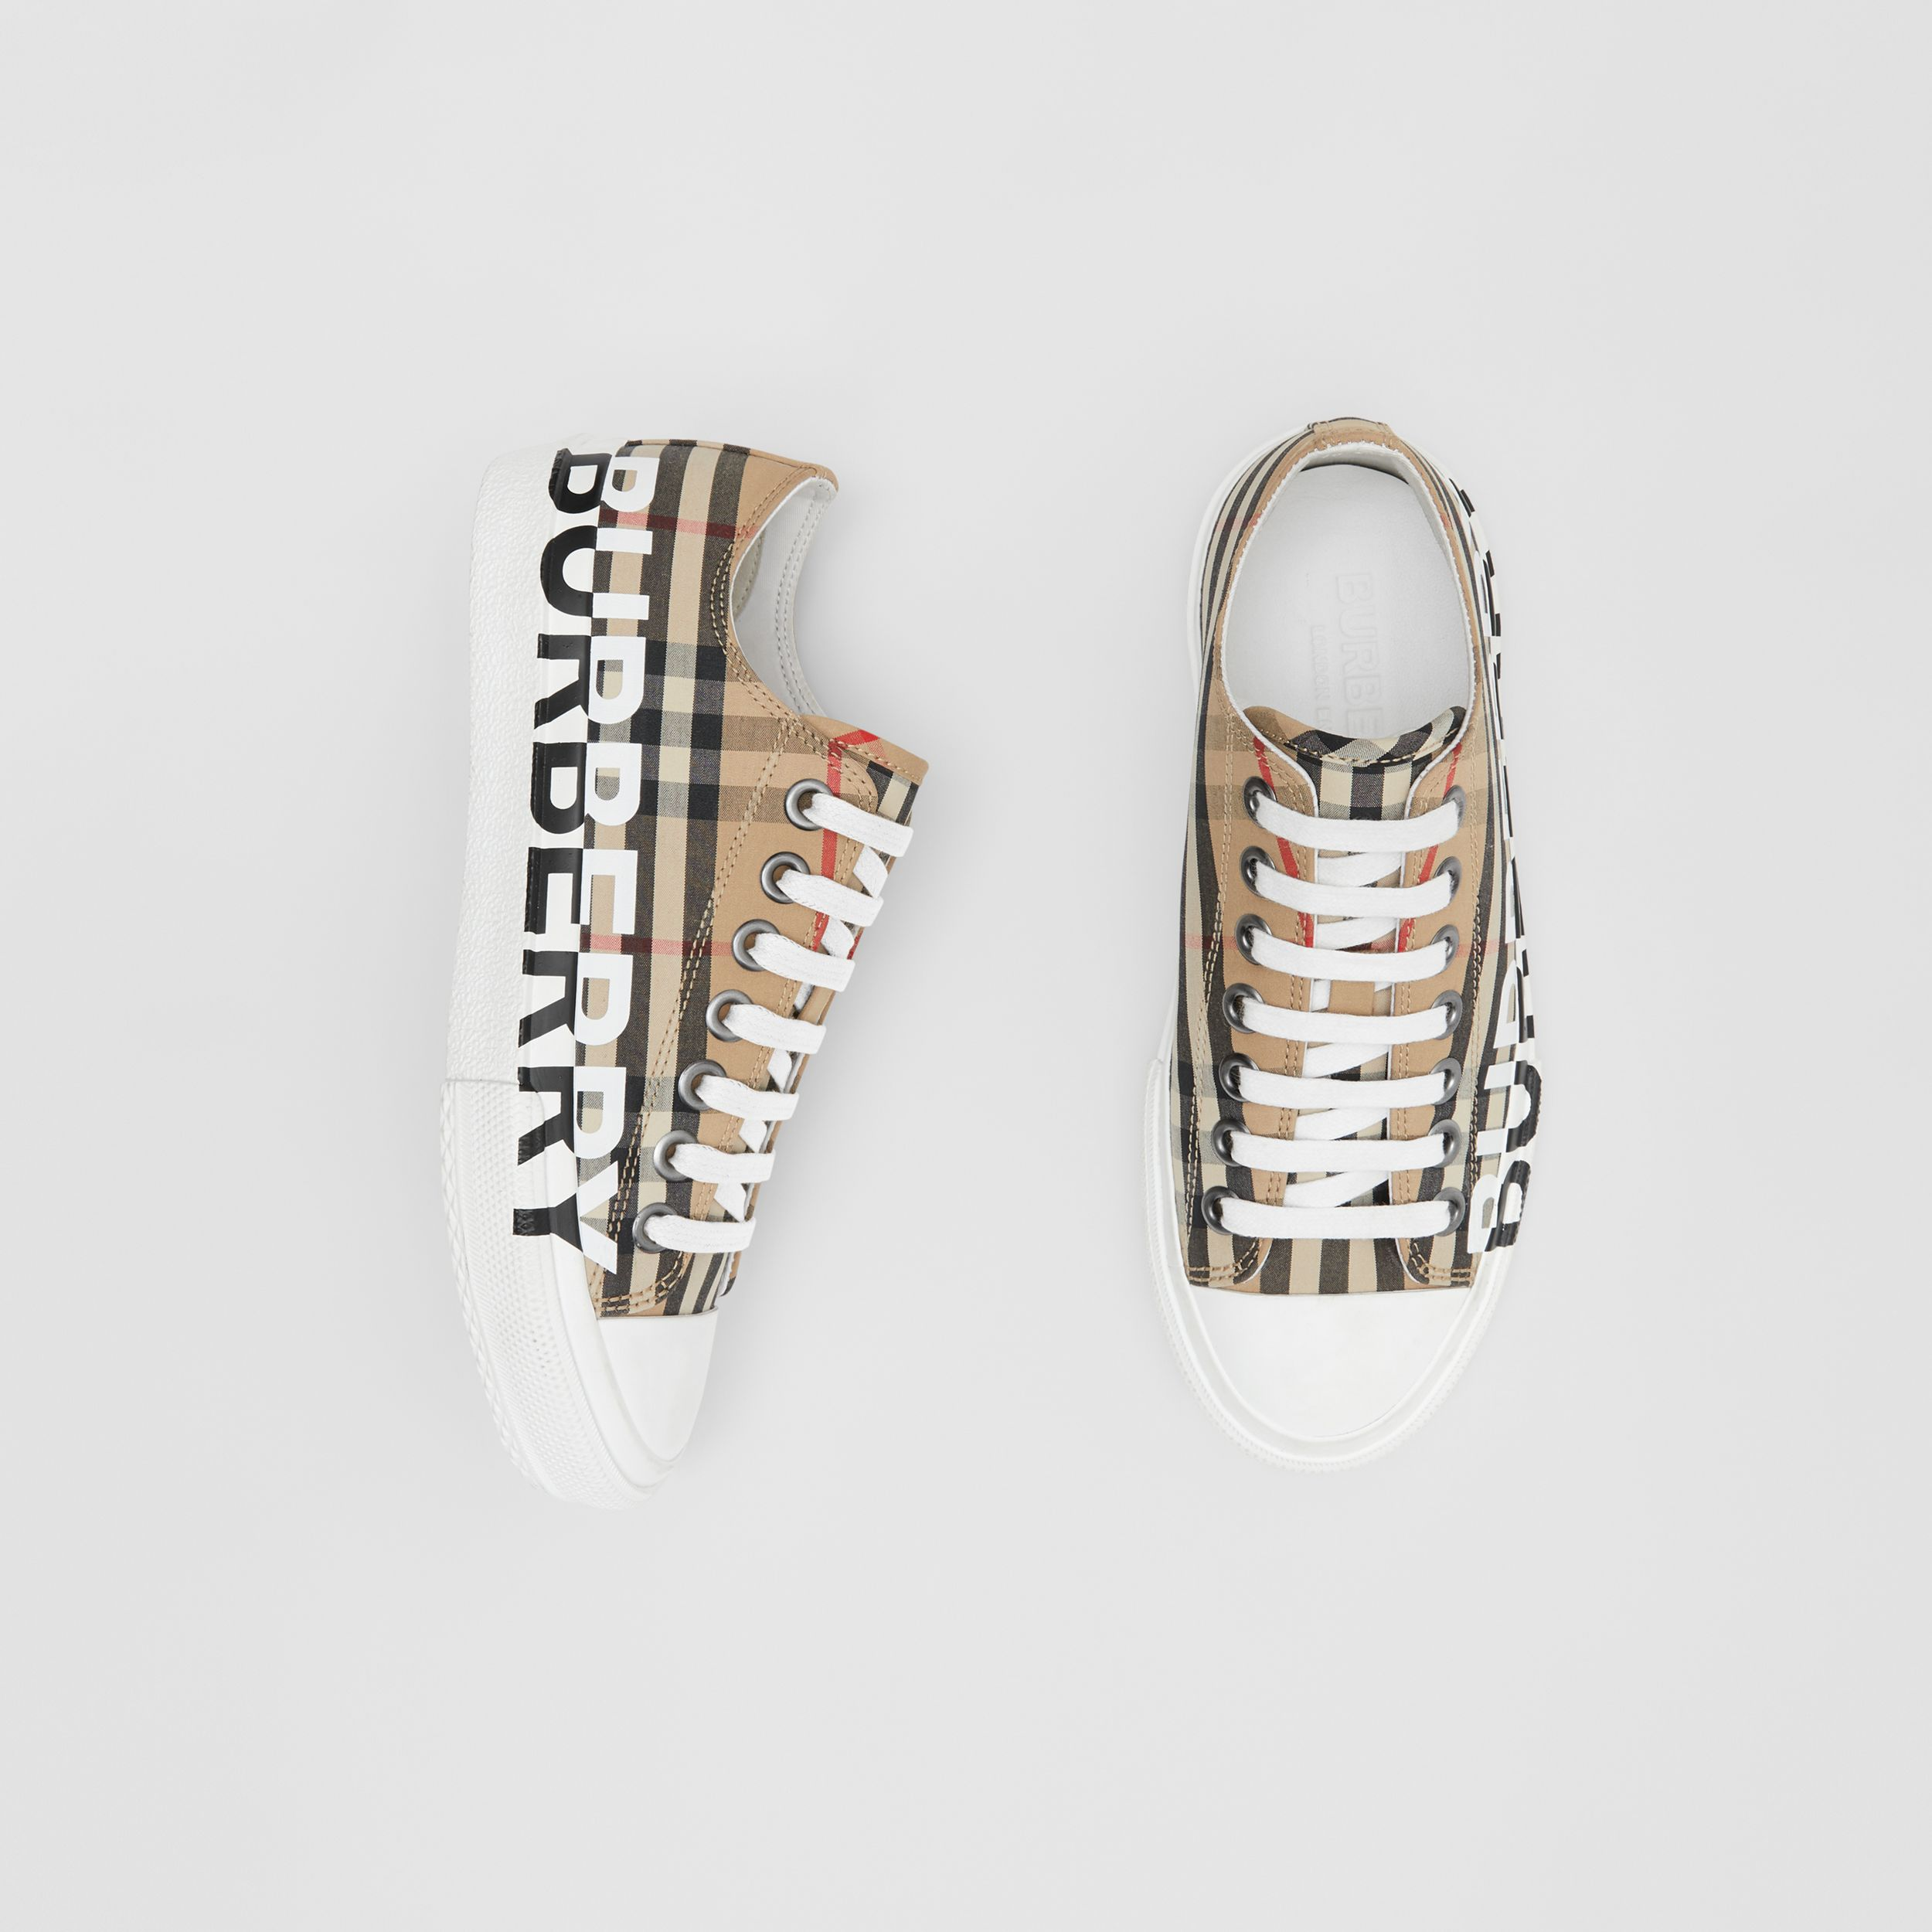 Logo Print Vintage Check Cotton Sneakers in Archive Beige - Women | Burberry Canada - 1